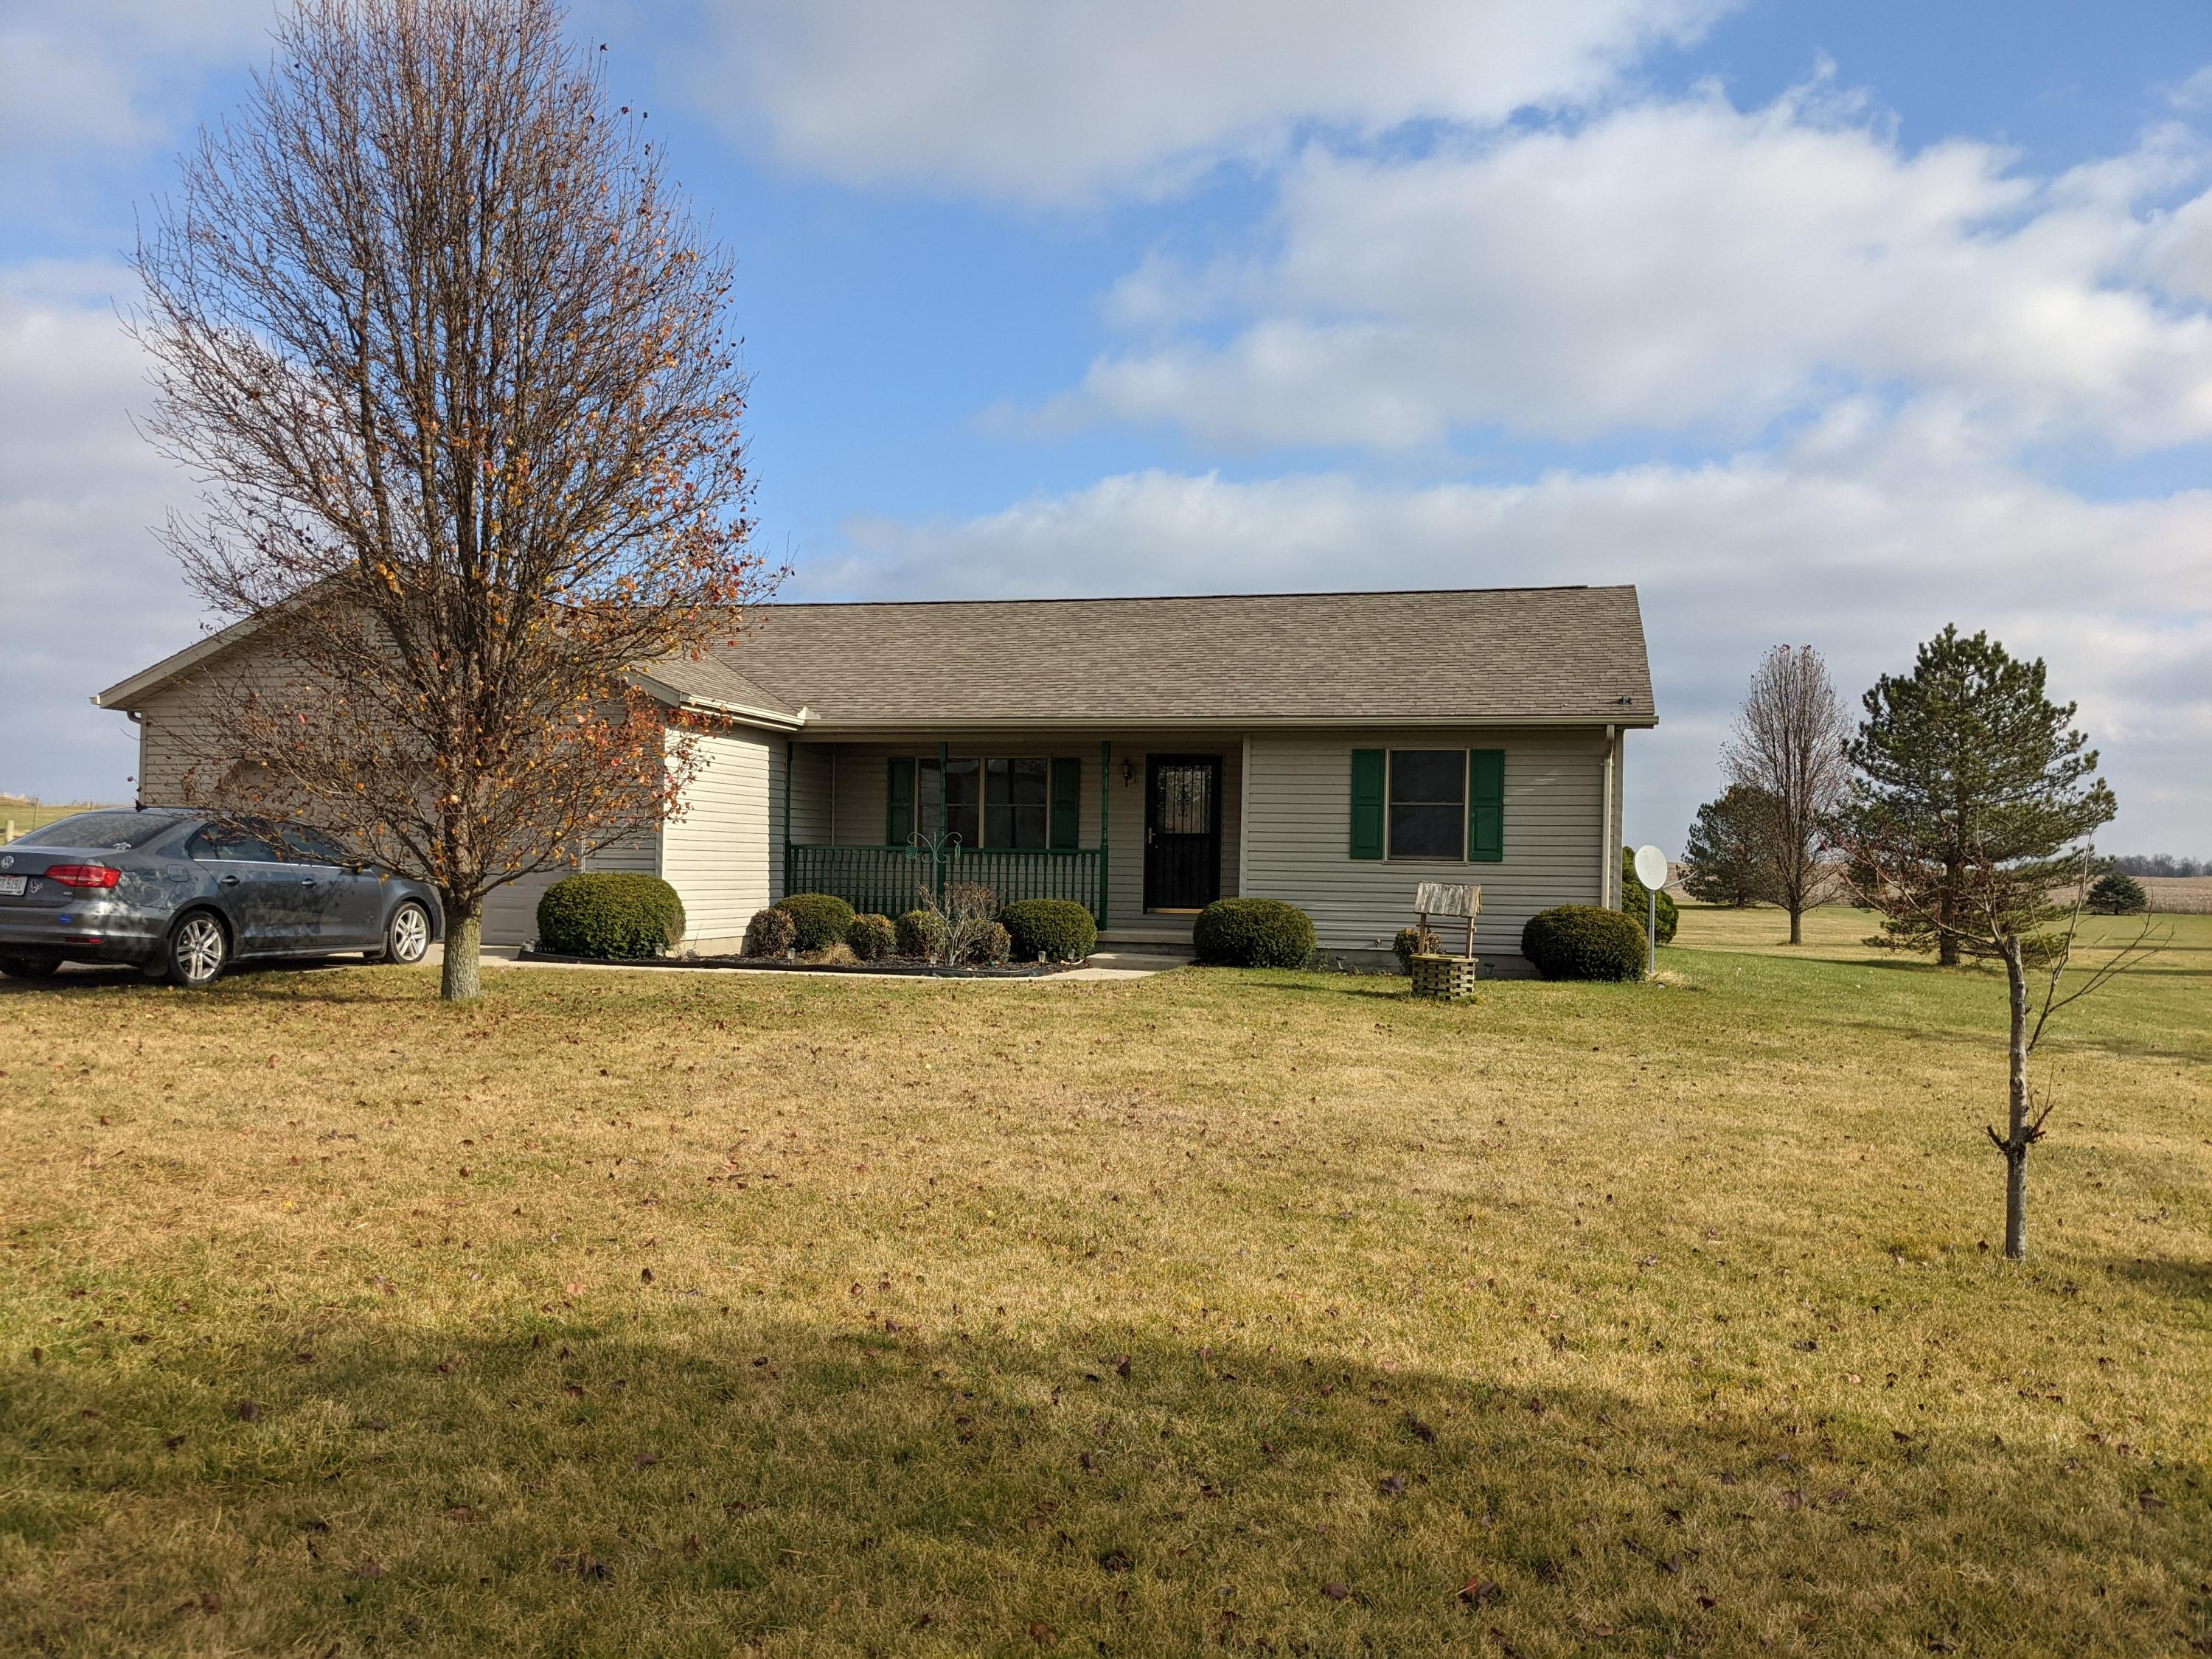 Photo 2 for 12300 Shroyer Rd Maplewood, OH 45340